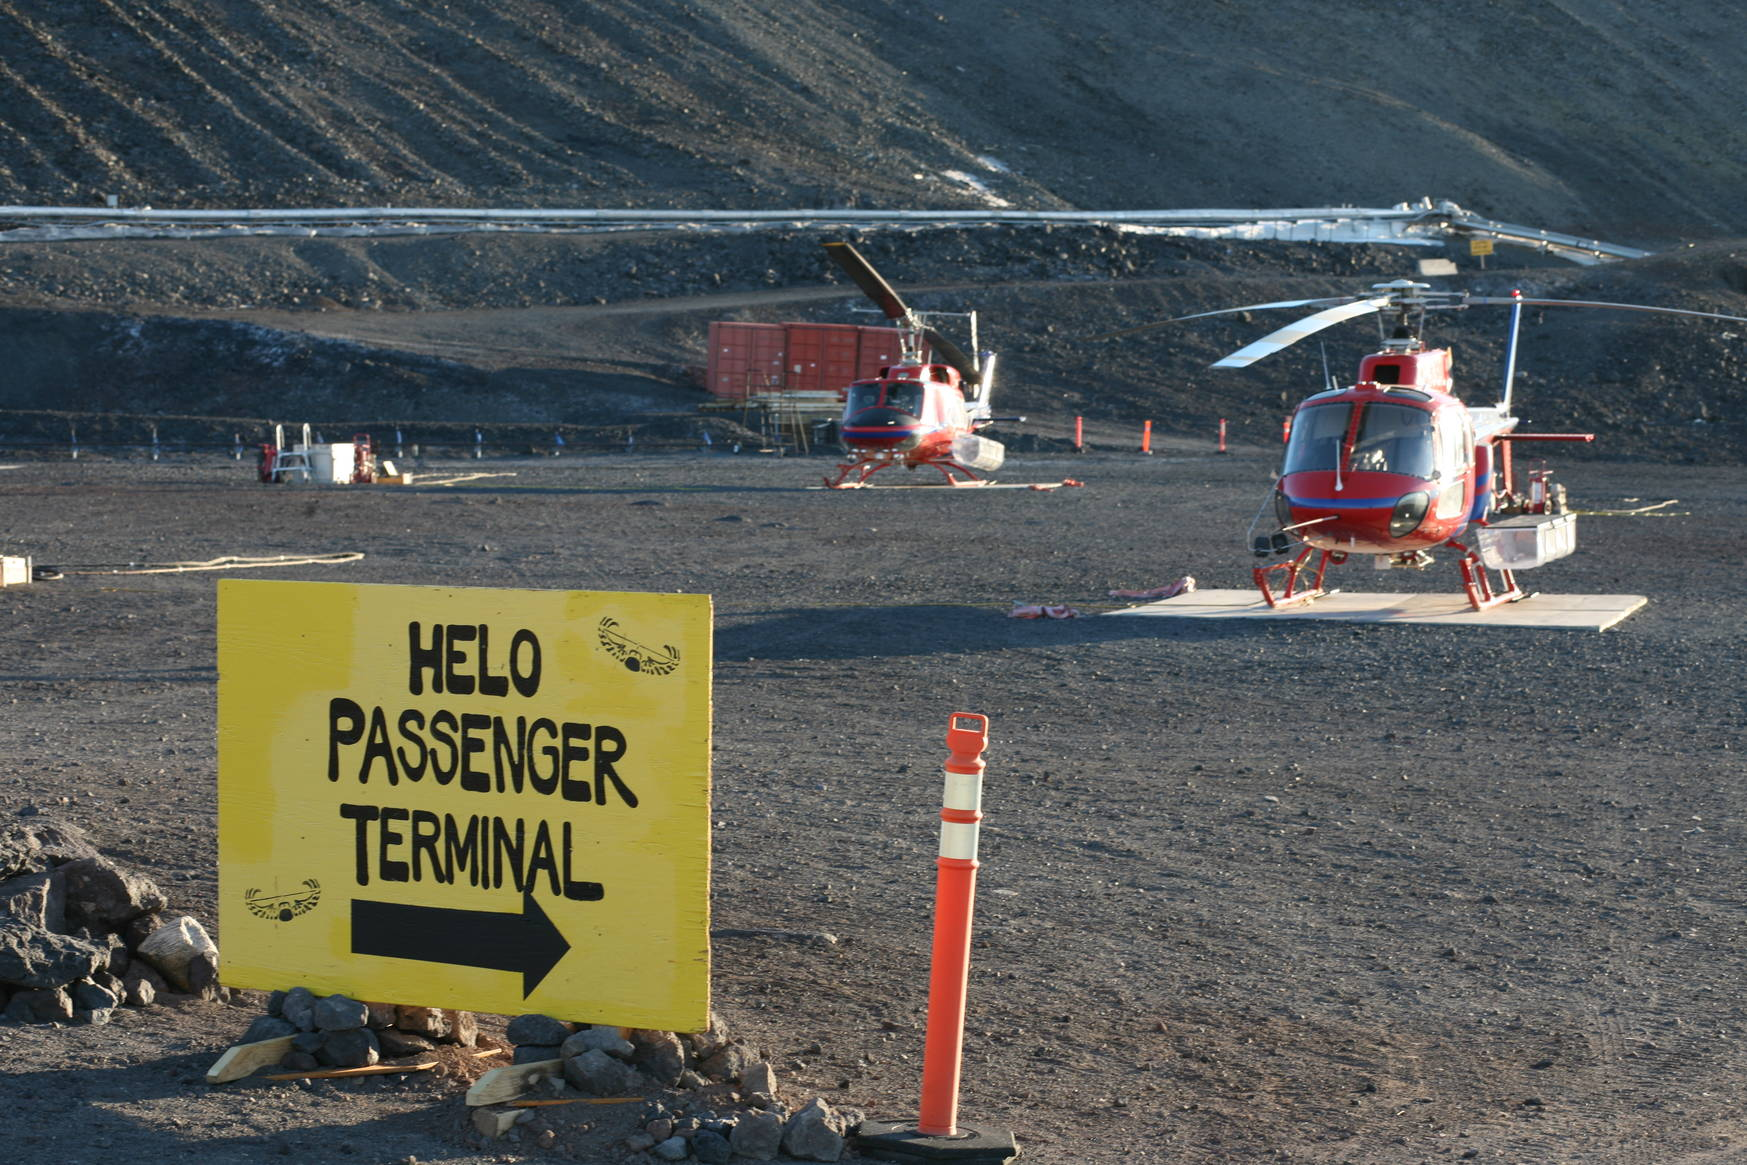 McMurdo's heliport.